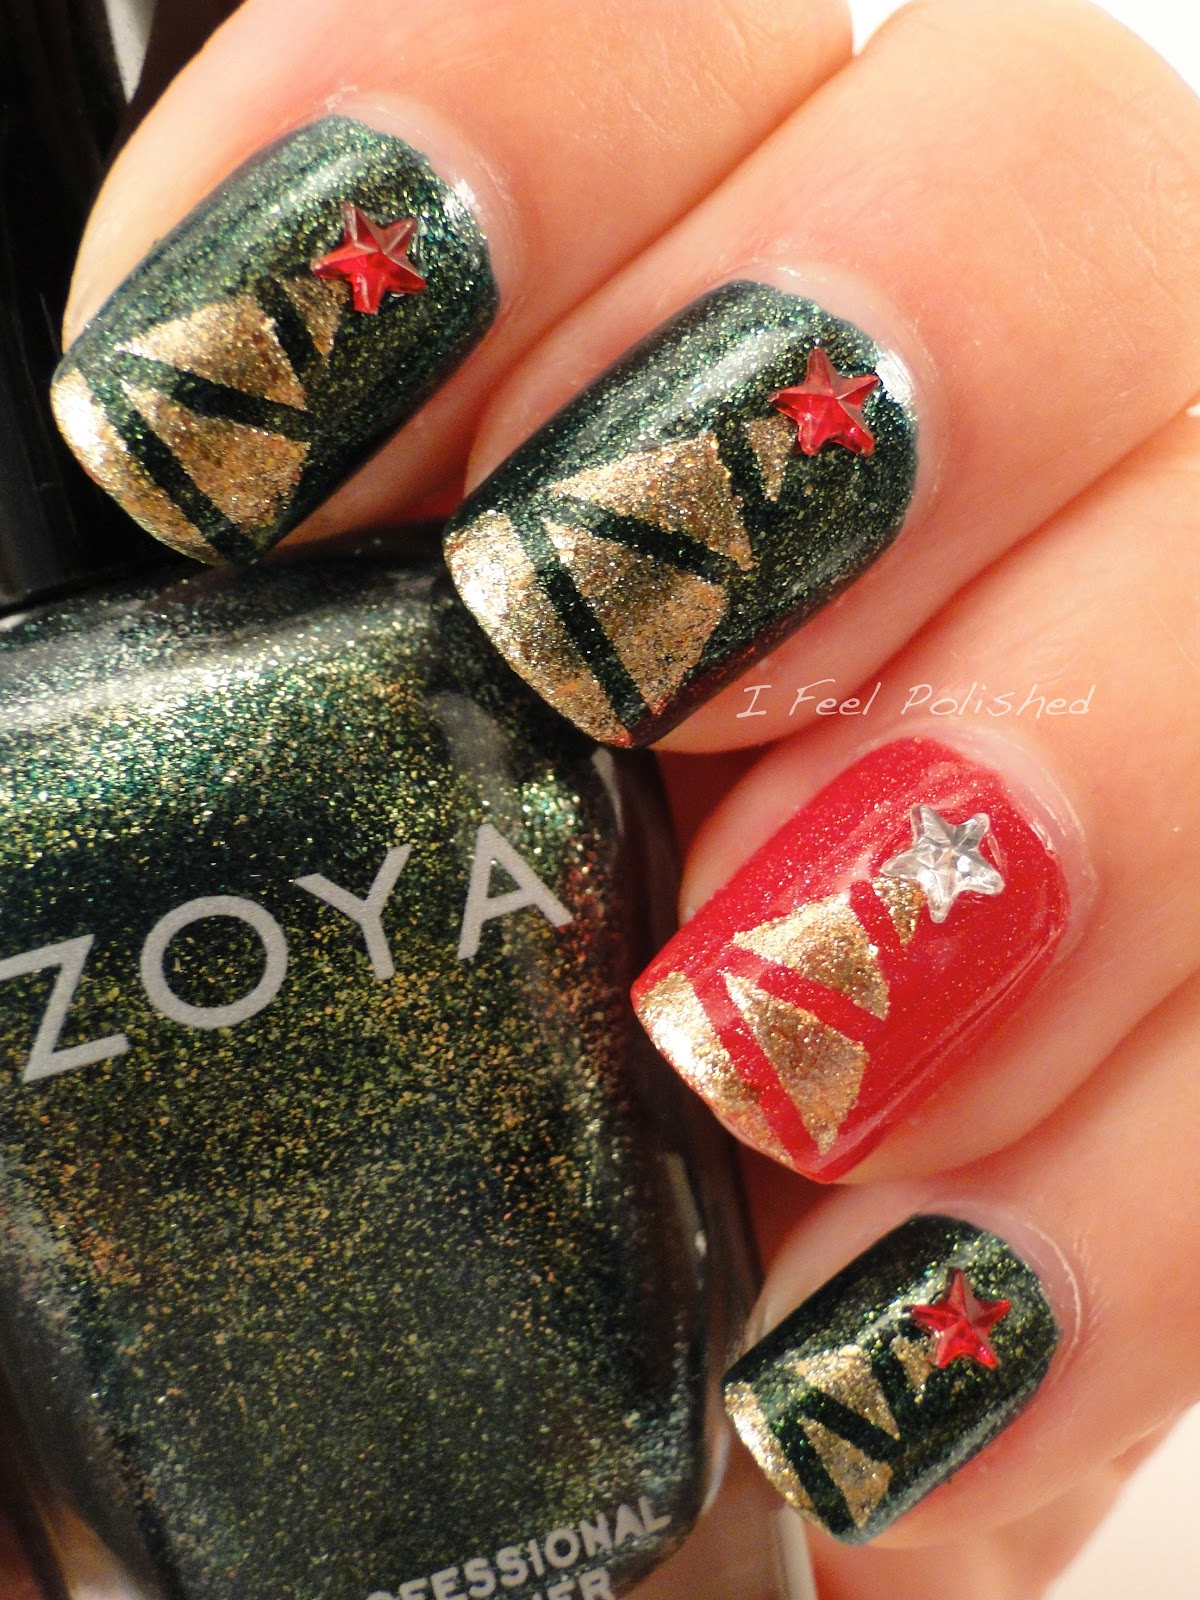 I Feel Polished!: Christmas Tree Nails